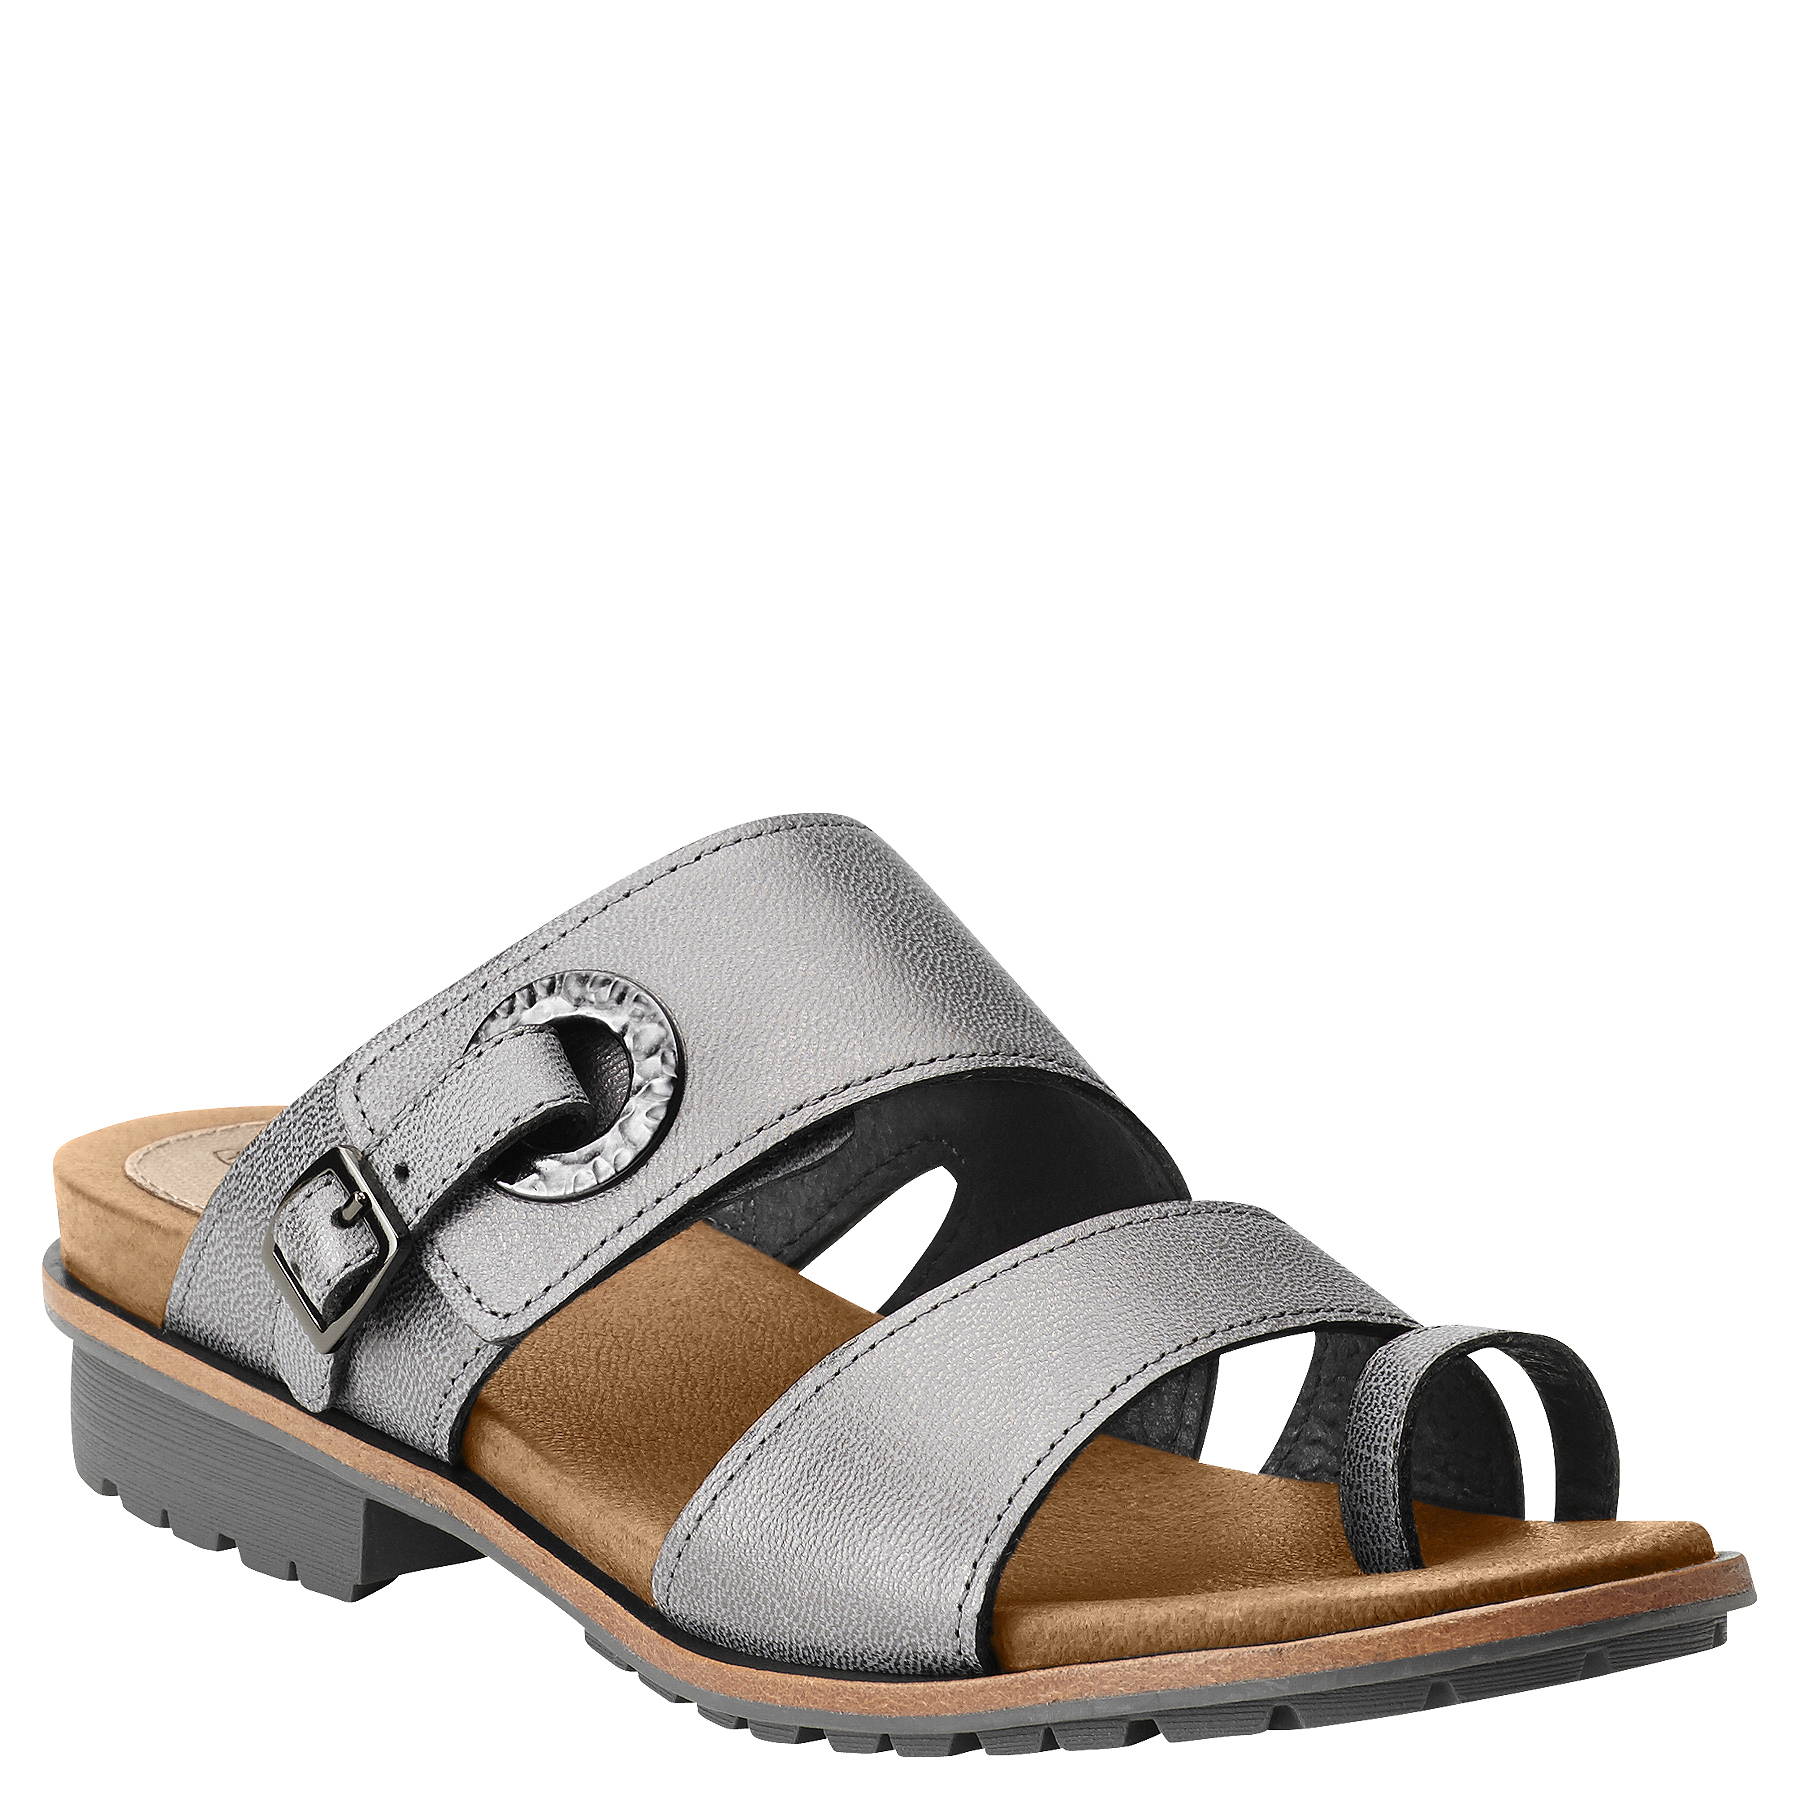 Ariat Women's Kailey Sandal